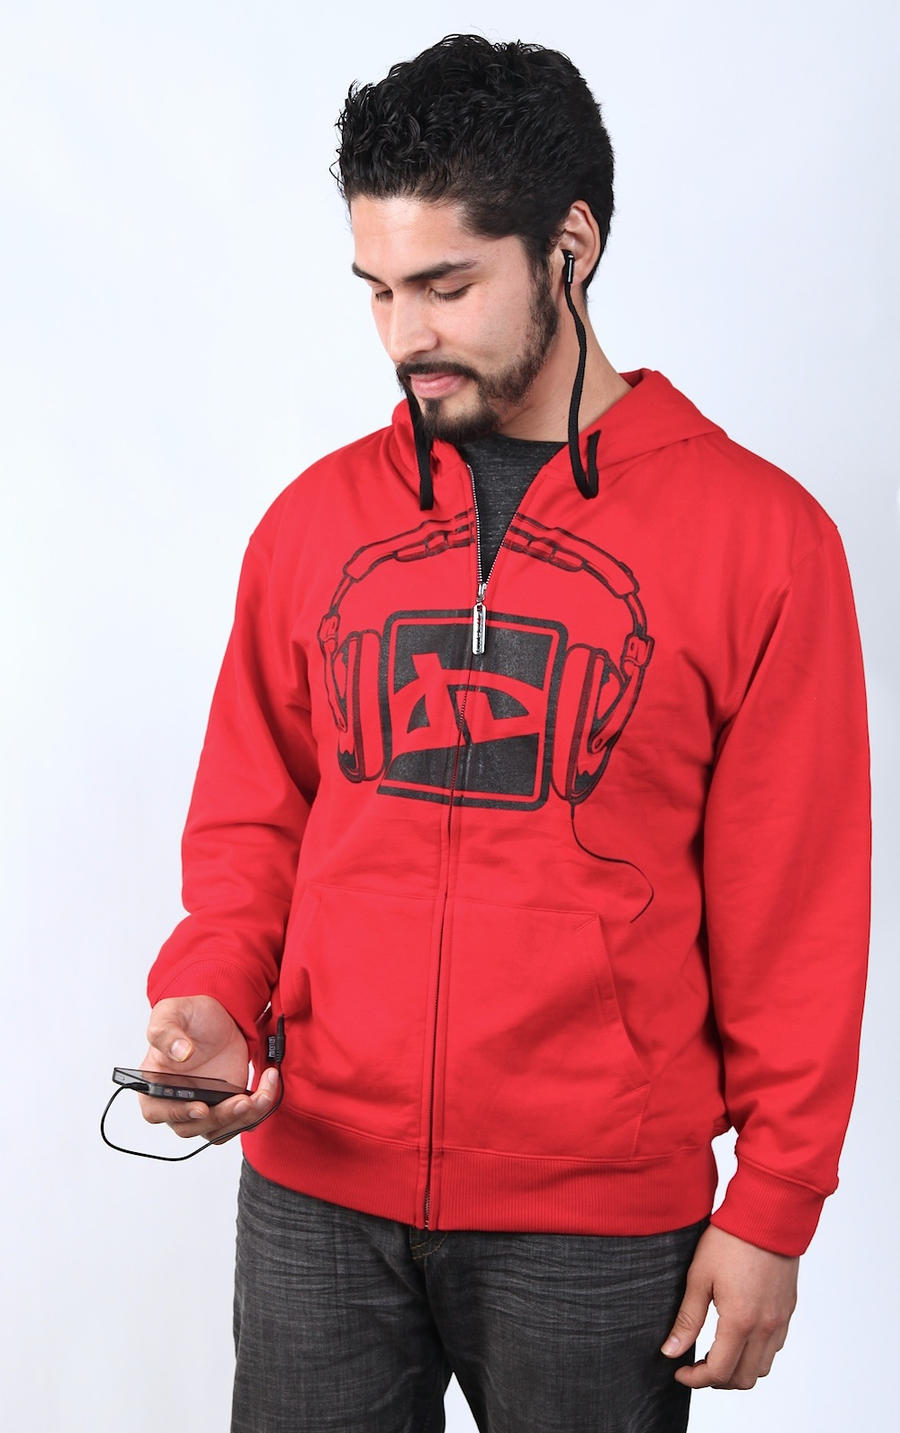 Decibel Headphone Hoodie by deviantARTGear